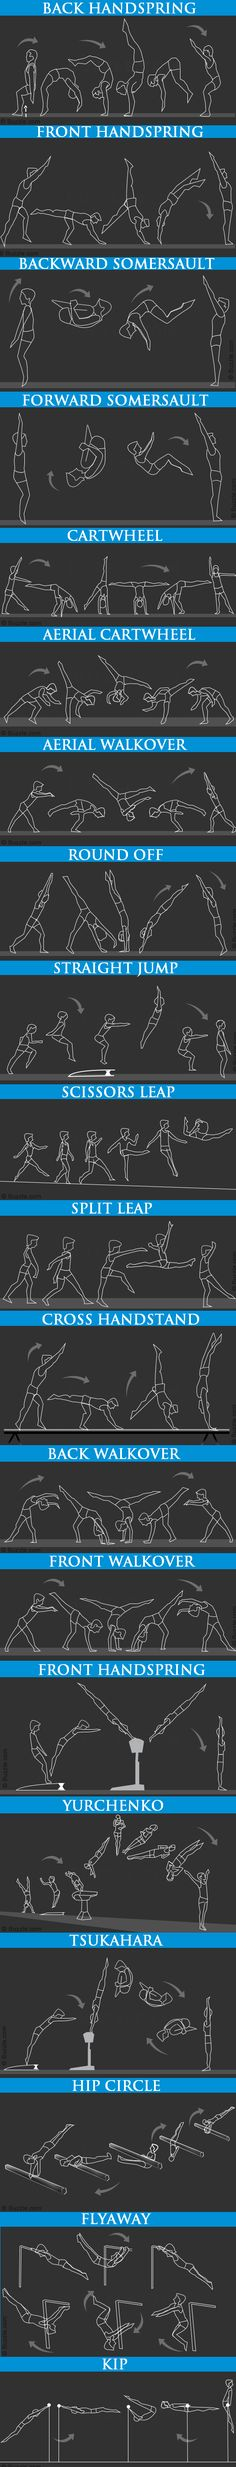 Basic Beginners Gymnastics Moves - Illustrated and Described